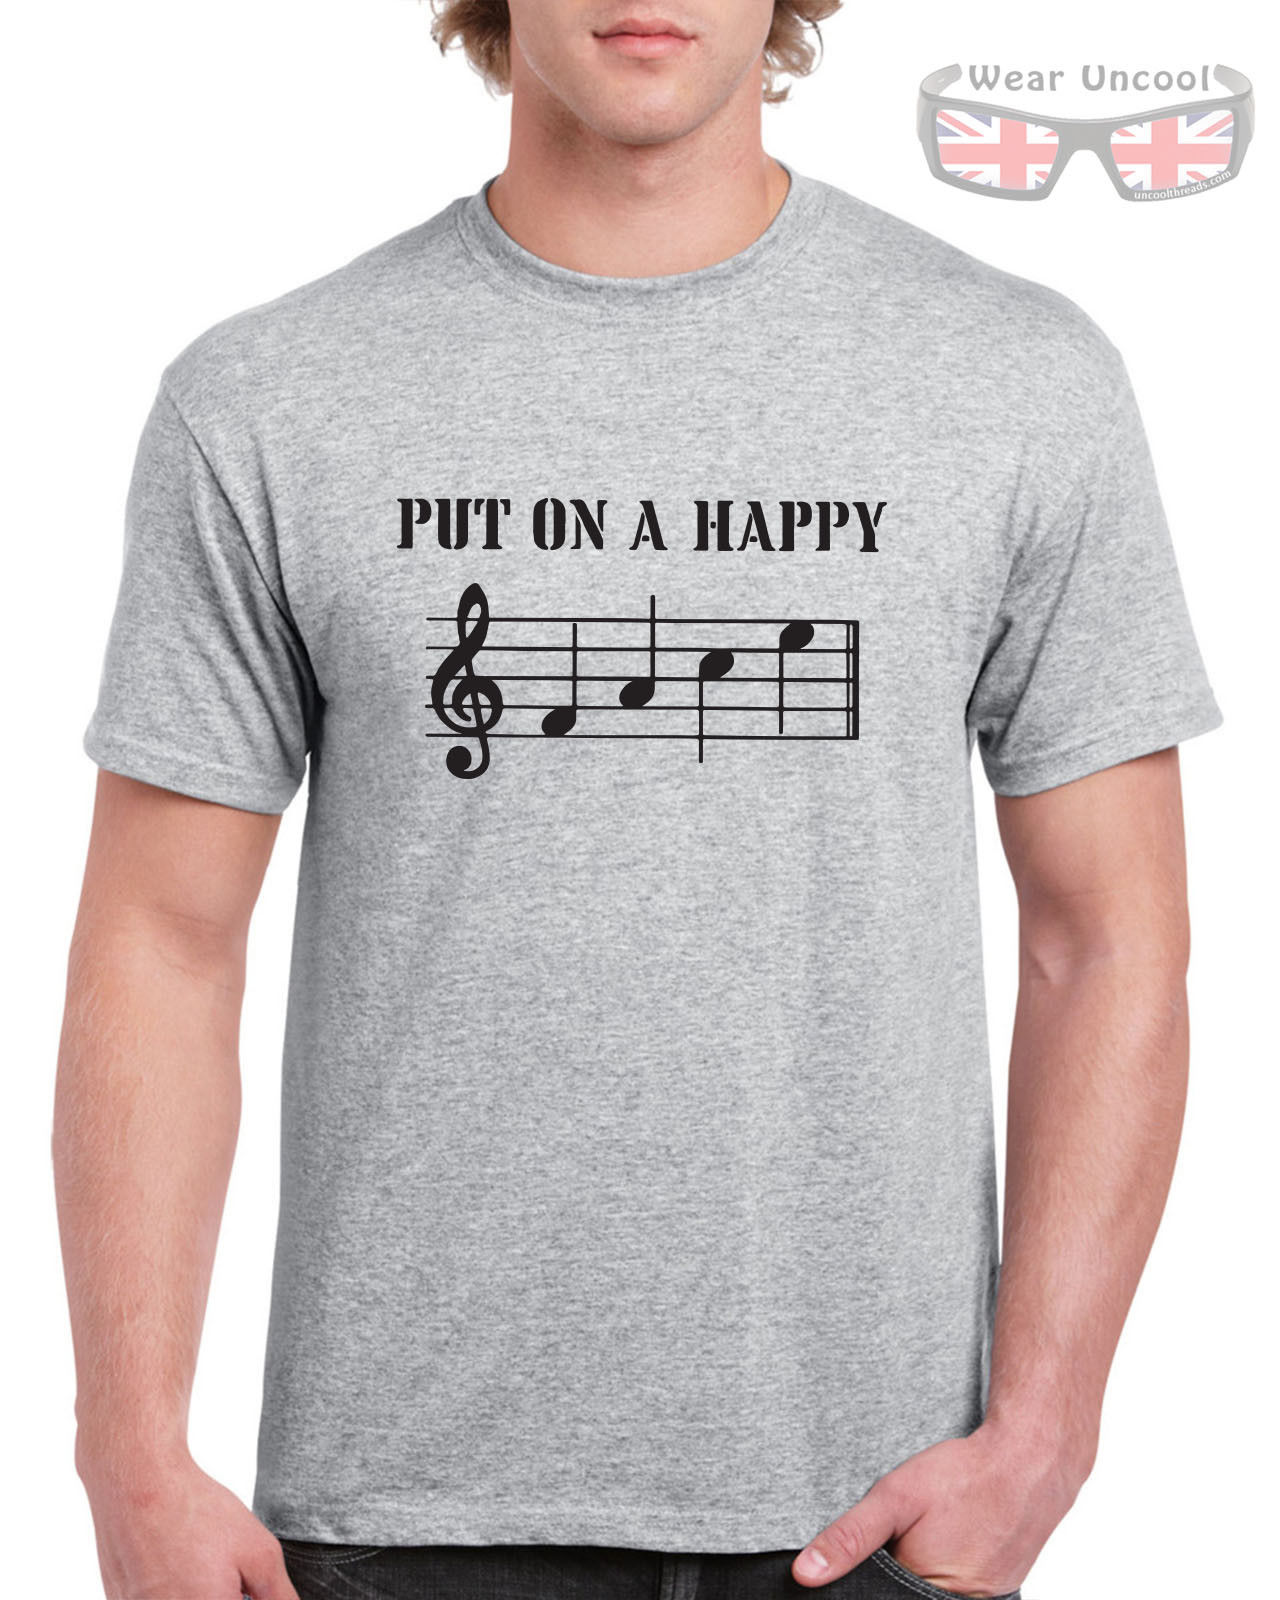 Piano Sheet Music Ladies Tee Funny Womens T-Shirt Put On A Happy Face